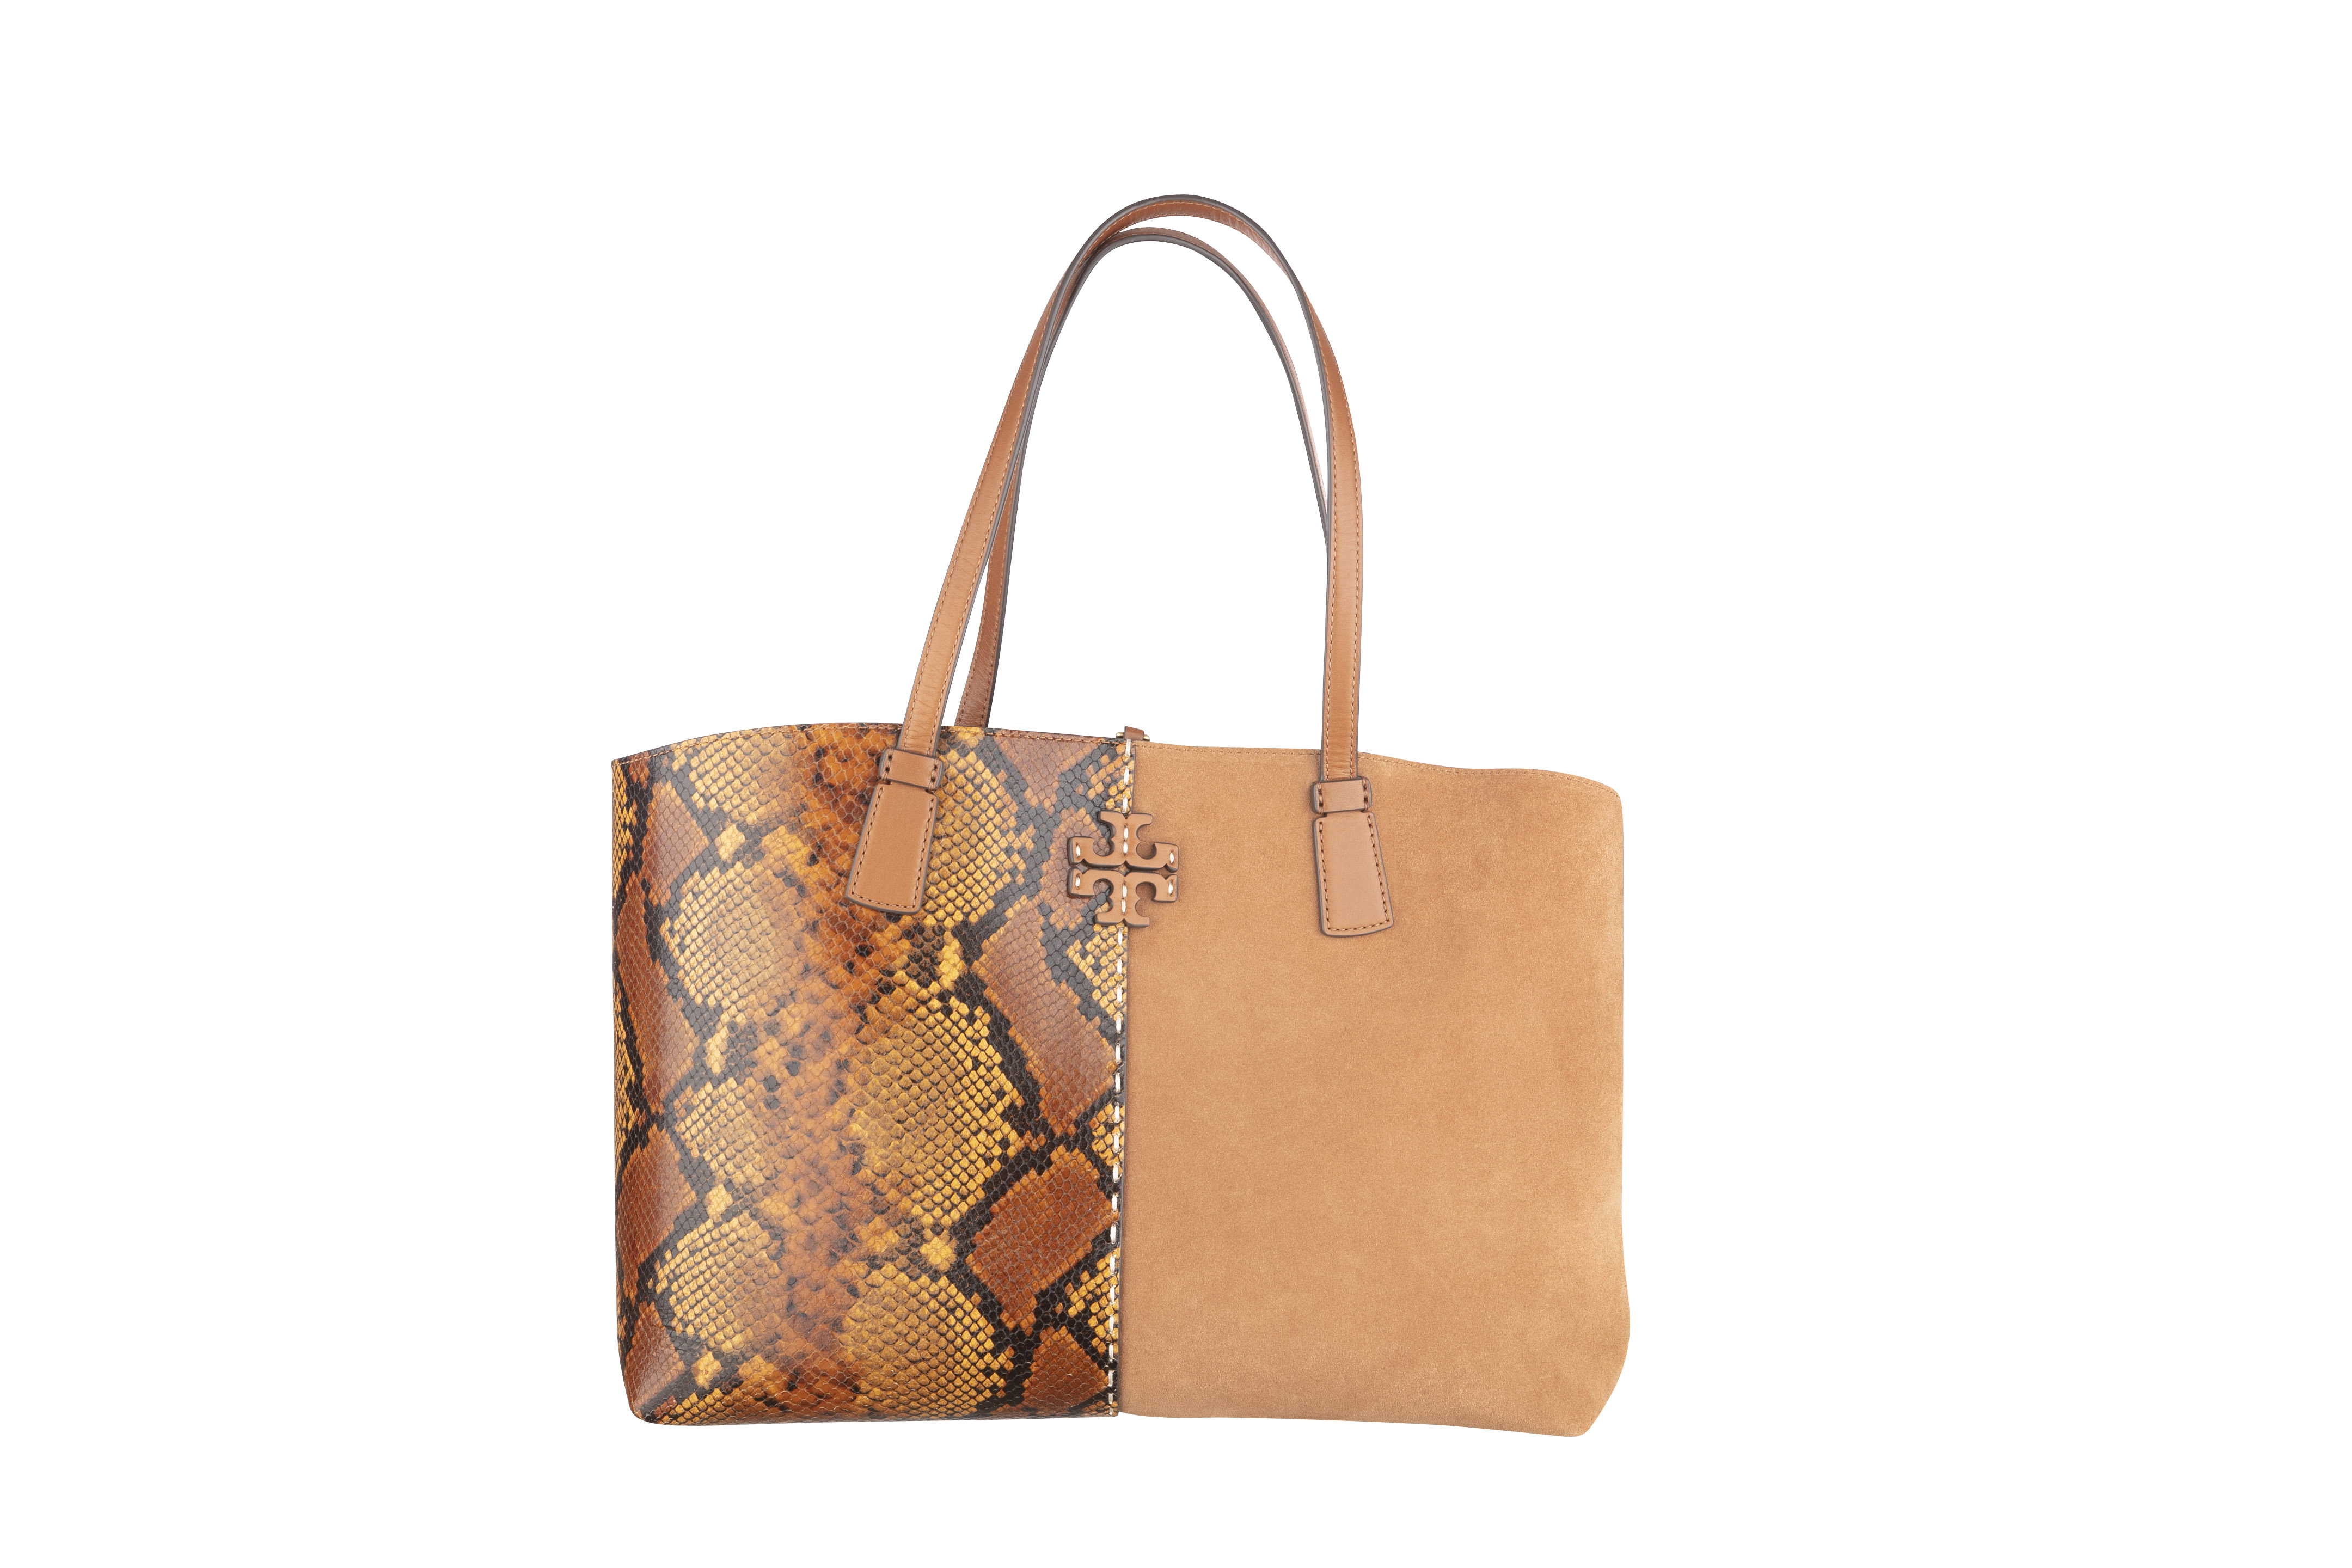 EXOTIC TOTE